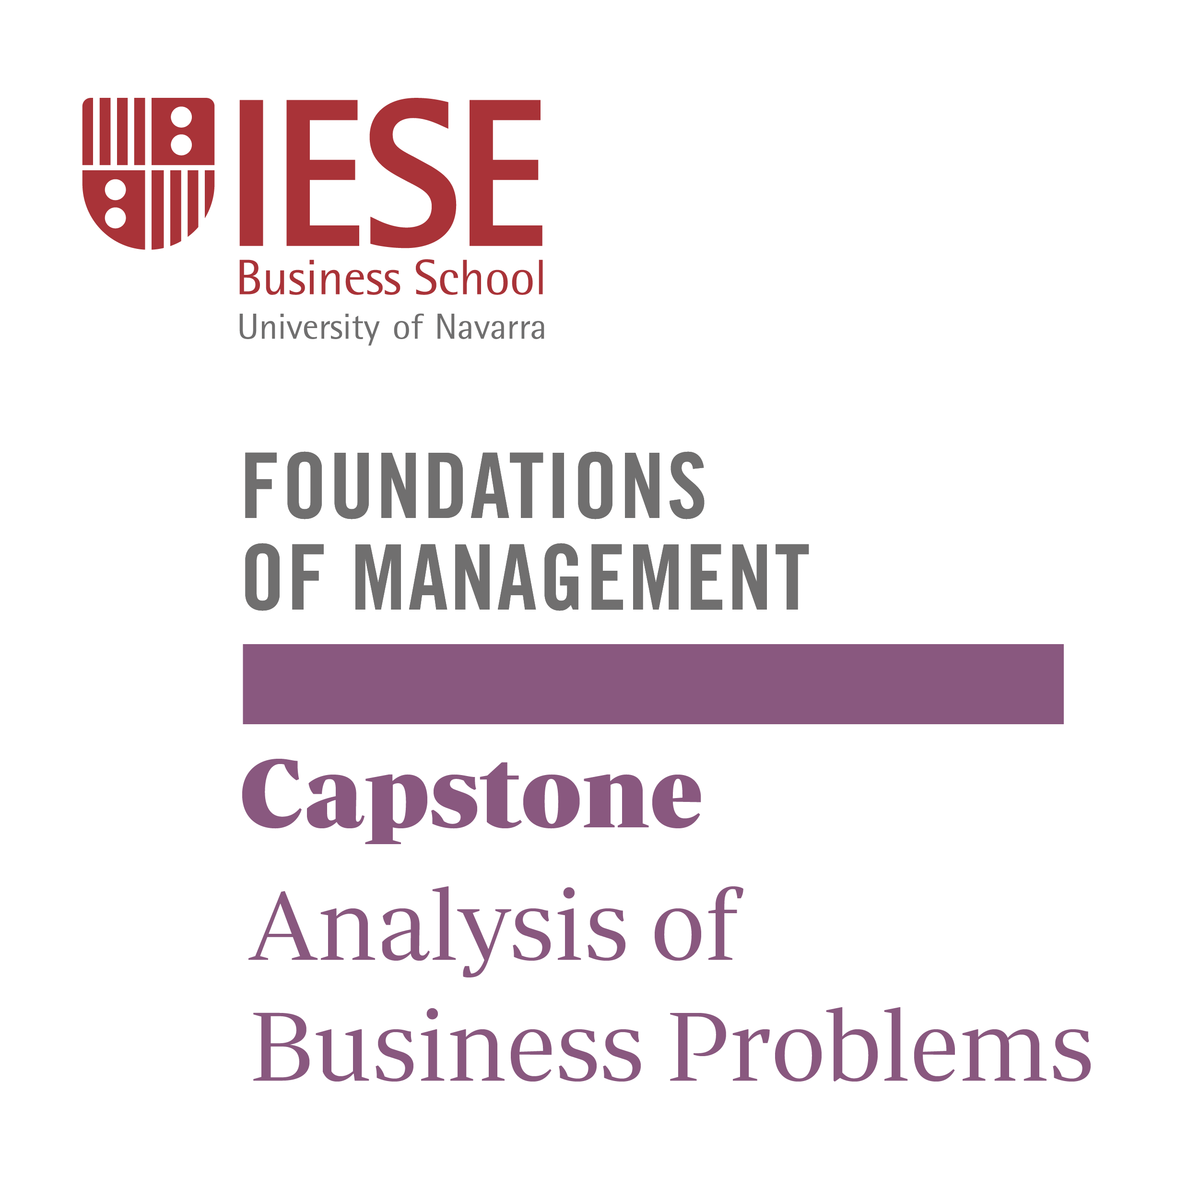 Analysis of Business Problems: Capstone